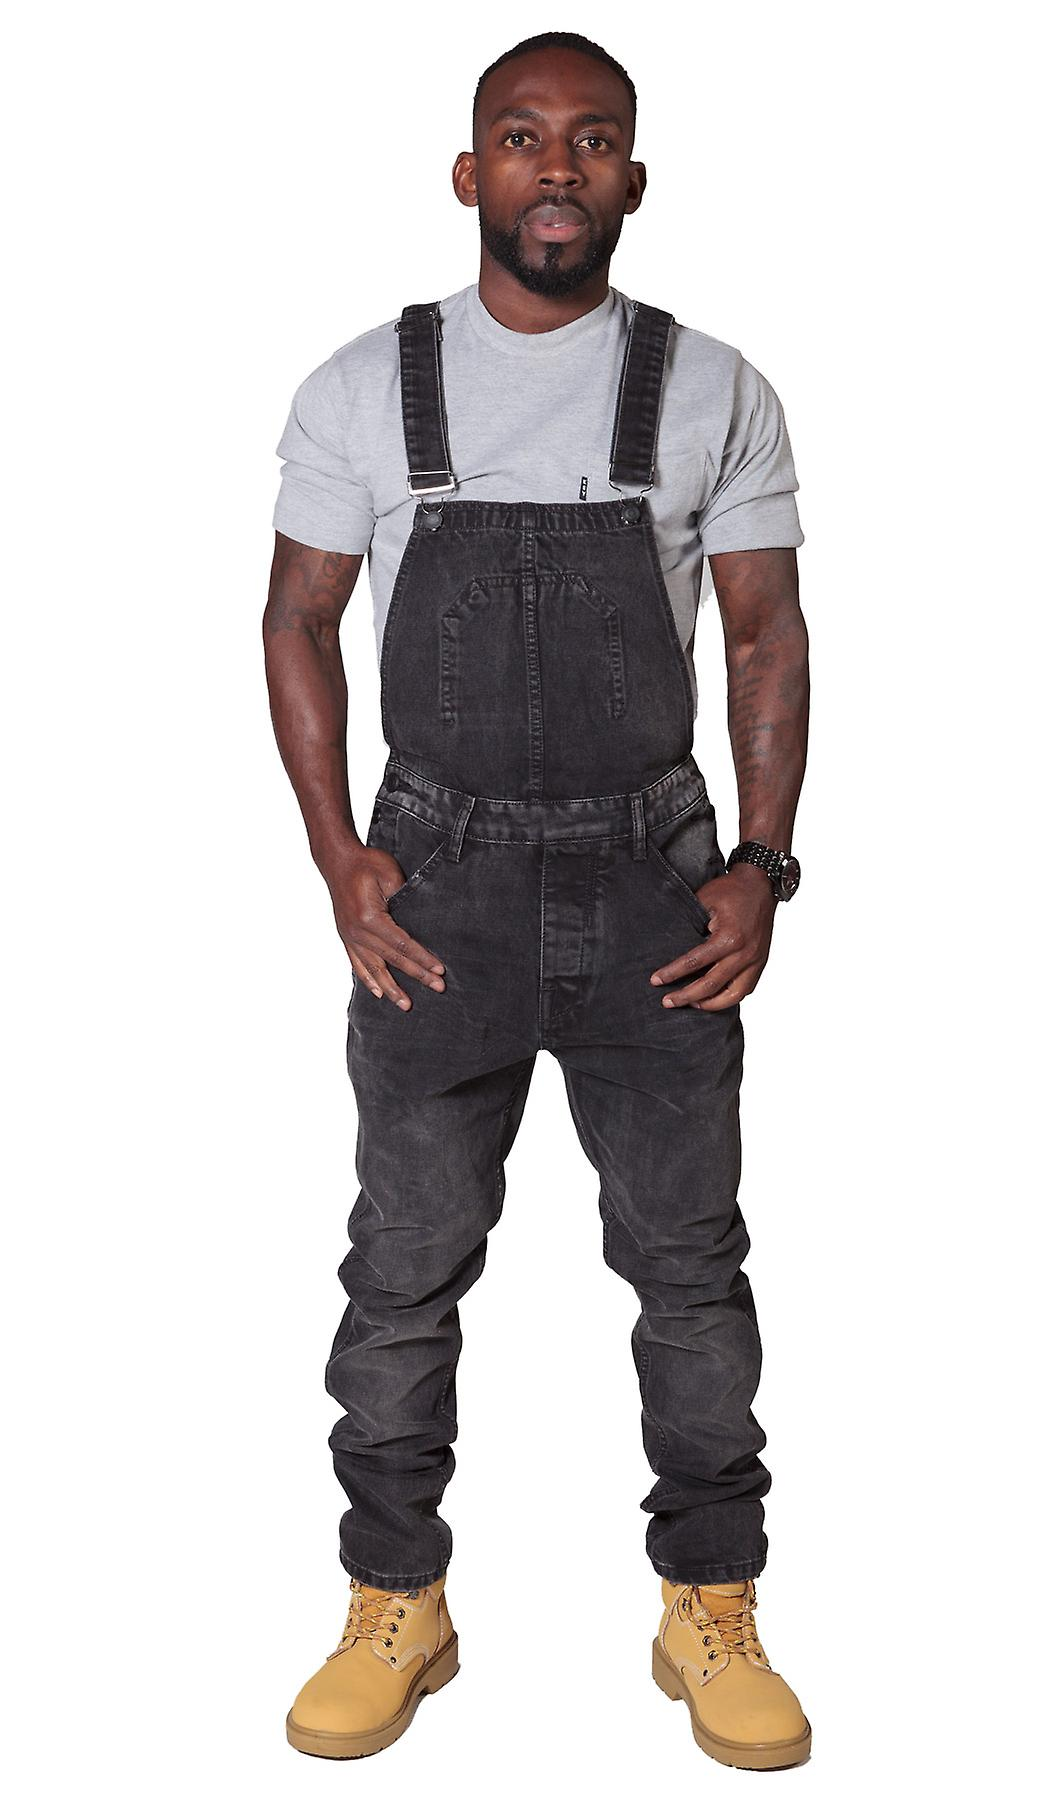 47edb066f16 Slim Fit Men s Dungarees - Faded Black Denim Overalls for Men Bib Down  Dungarees